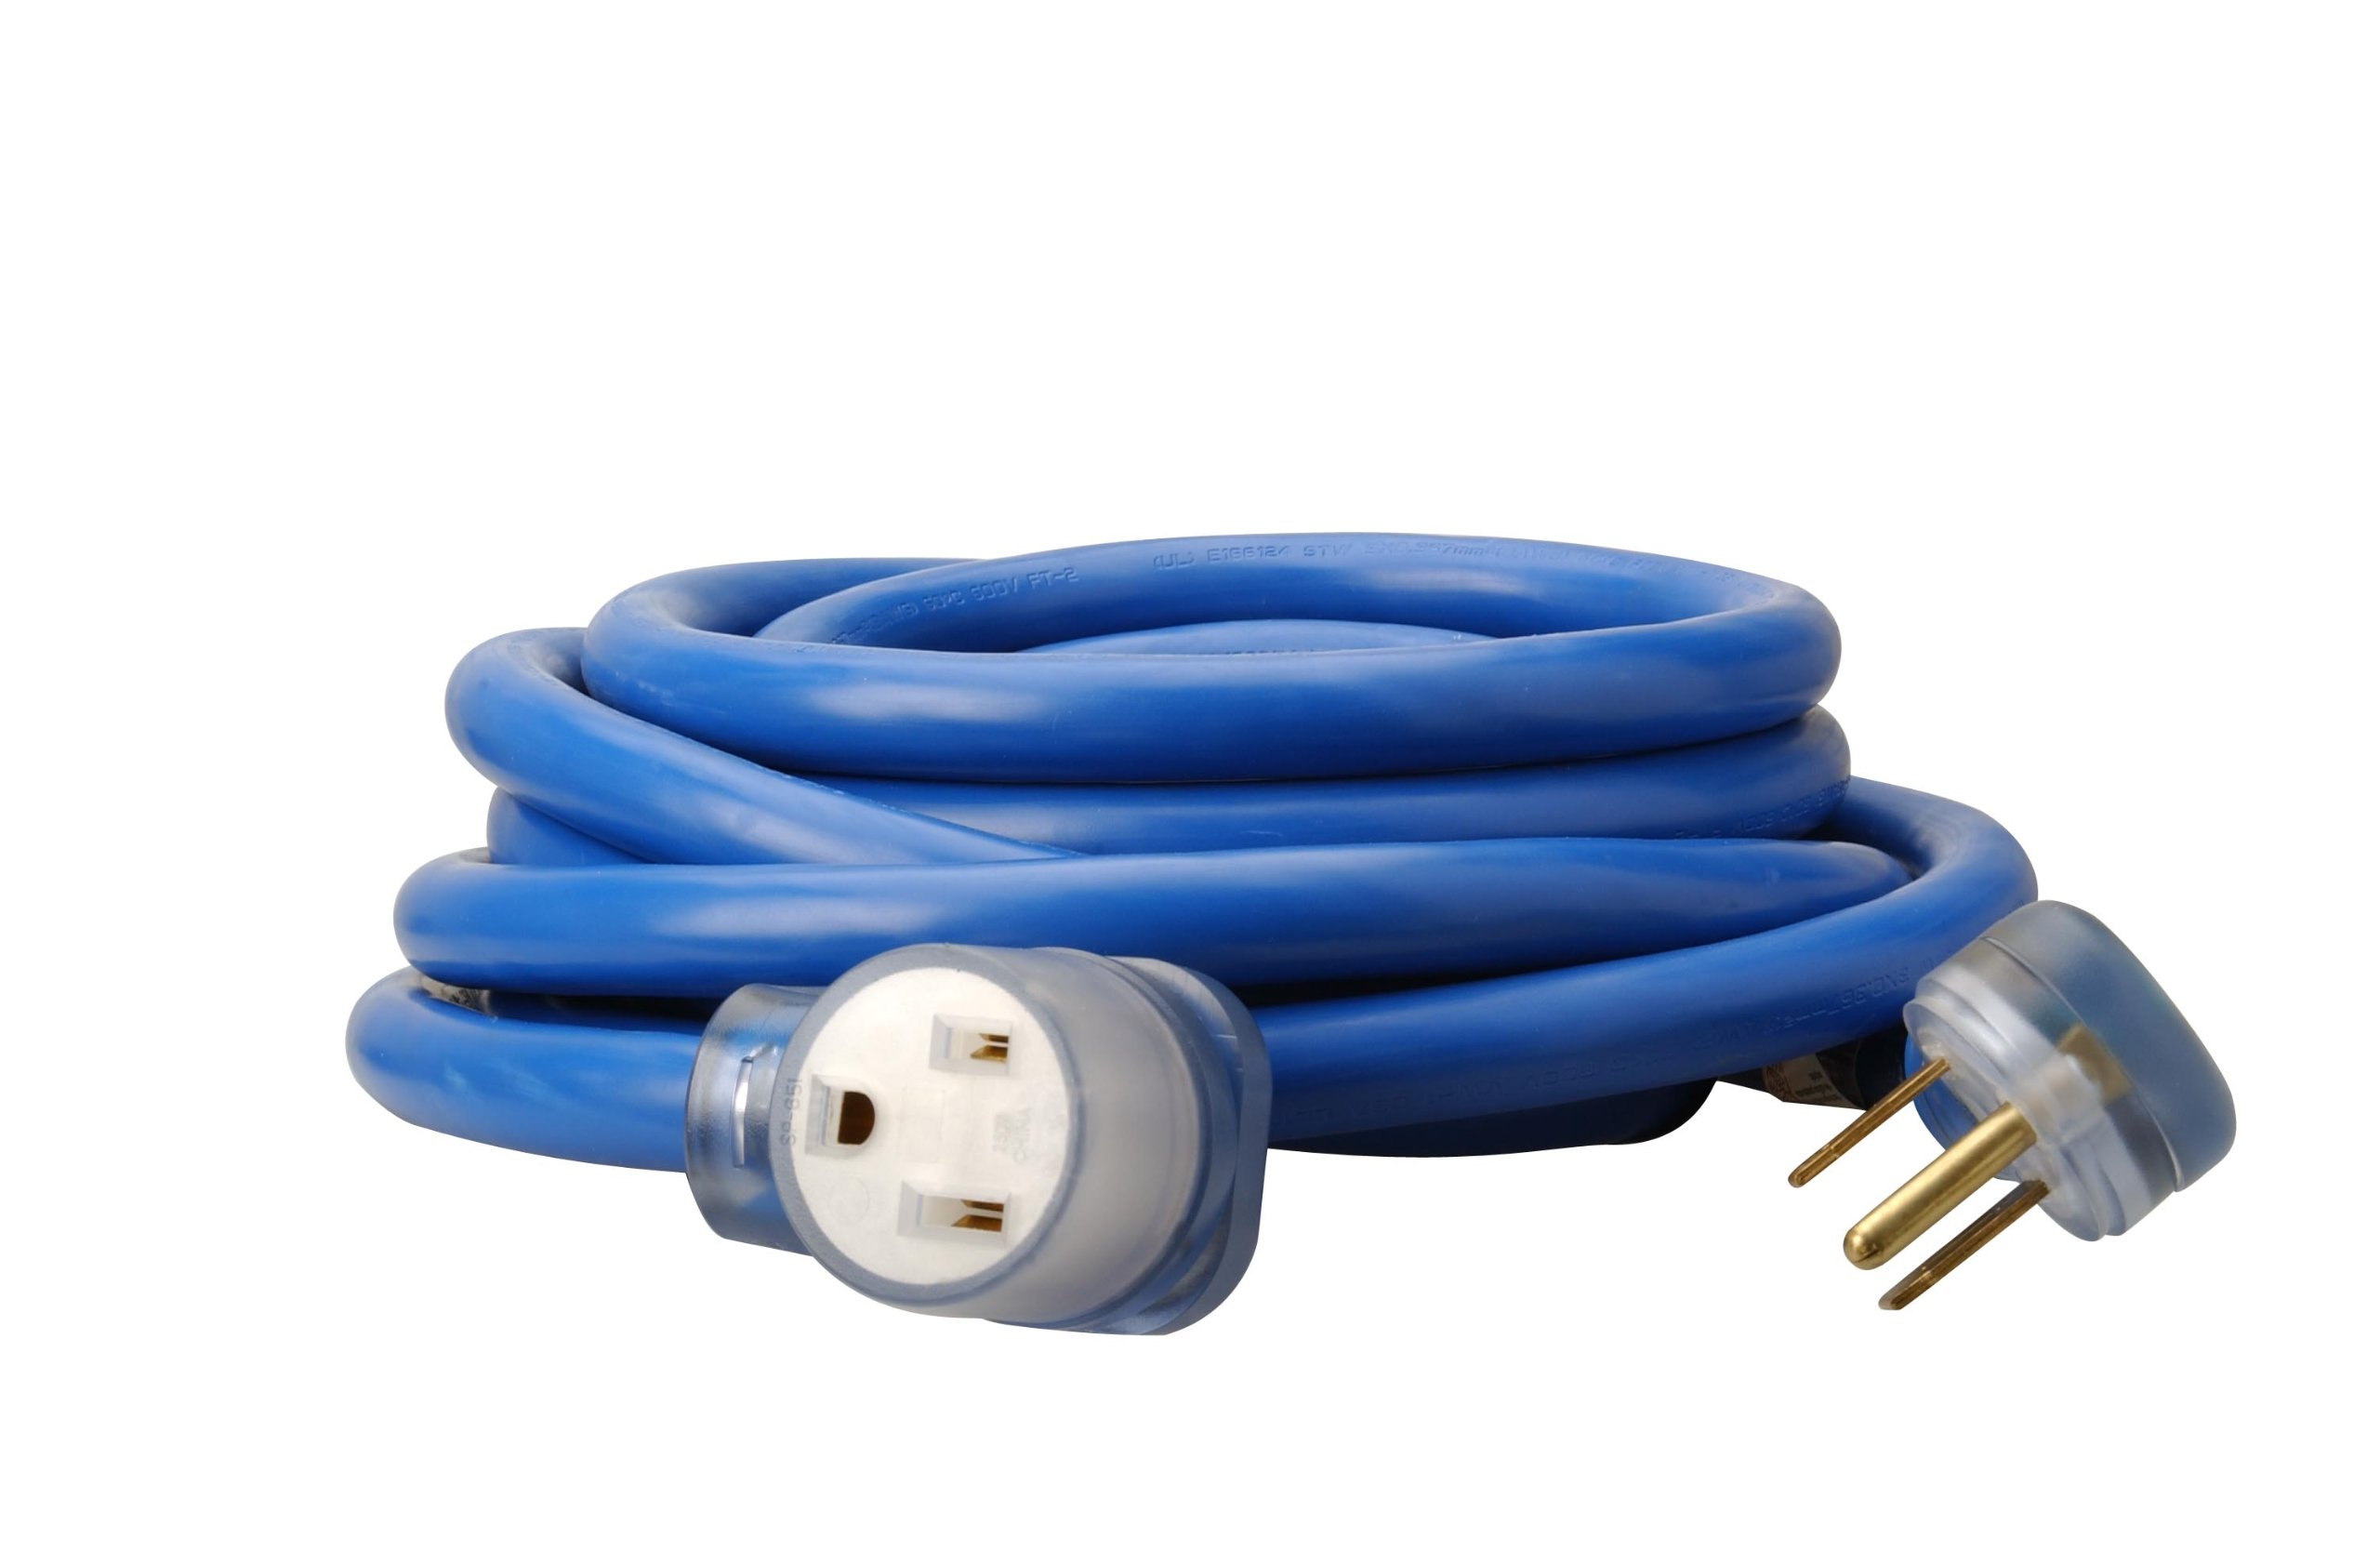 Coleman Cable 1917 8 3 Stw 6 50 Welder Extension Cord With Prong Welding Receptacle Wiring Plug In Blue 25 Foot Gauge